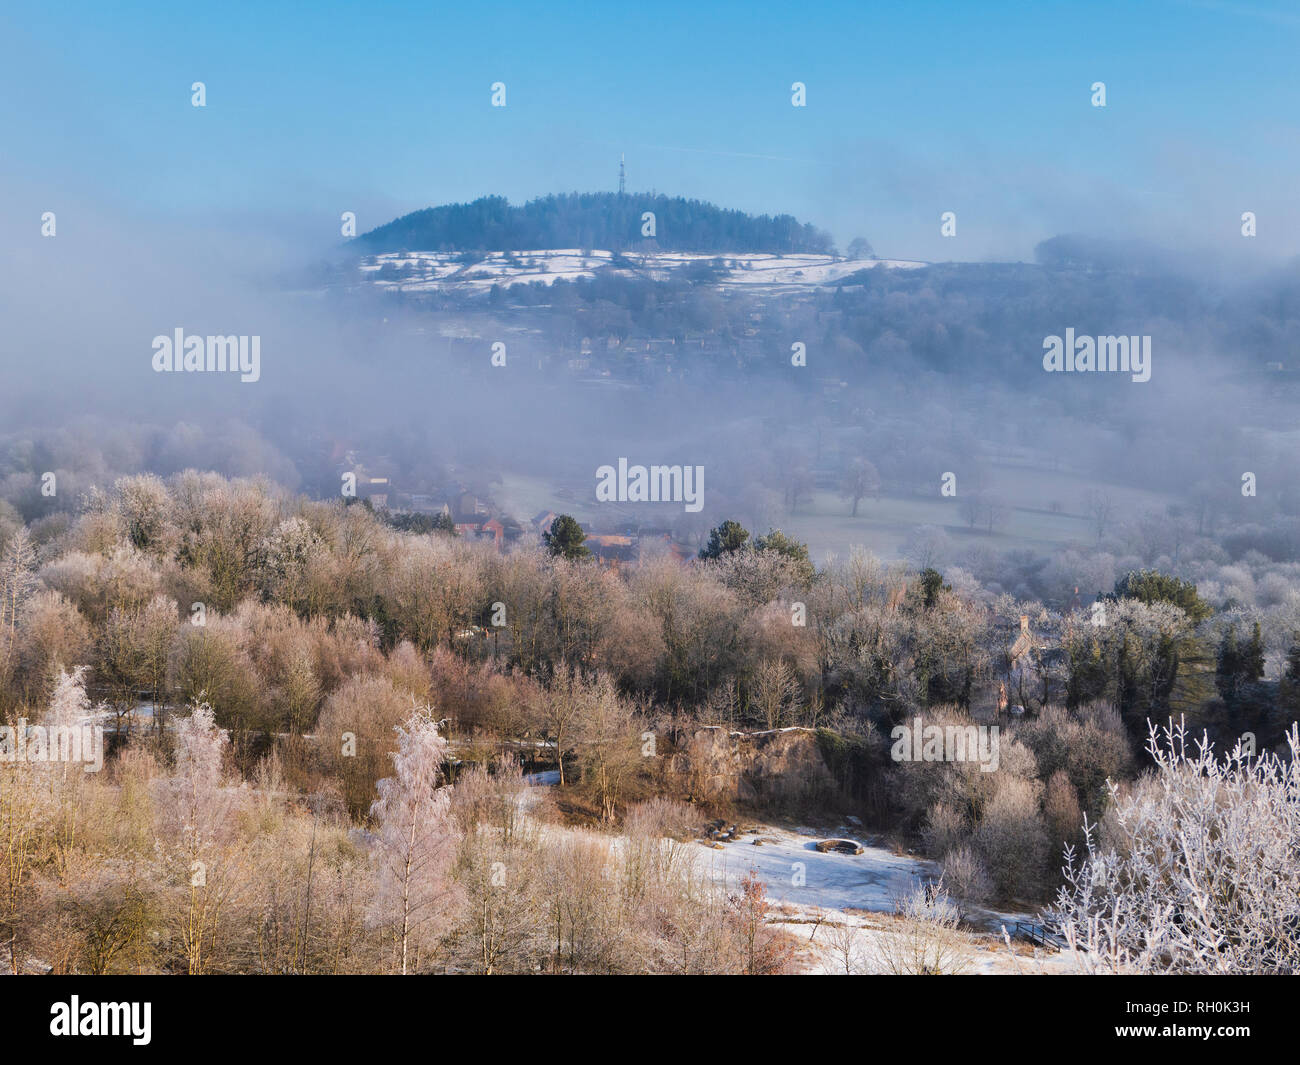 Bolehill, Wirksworth, Derbyshire Dales. 31st Jan 2019. UK Weather: Bolehill in the snow on a very cold winter day, Bolehill, Wirksworth, Derbyshire Dales Credit: Doug Blane/Alamy Live News Stock Photo